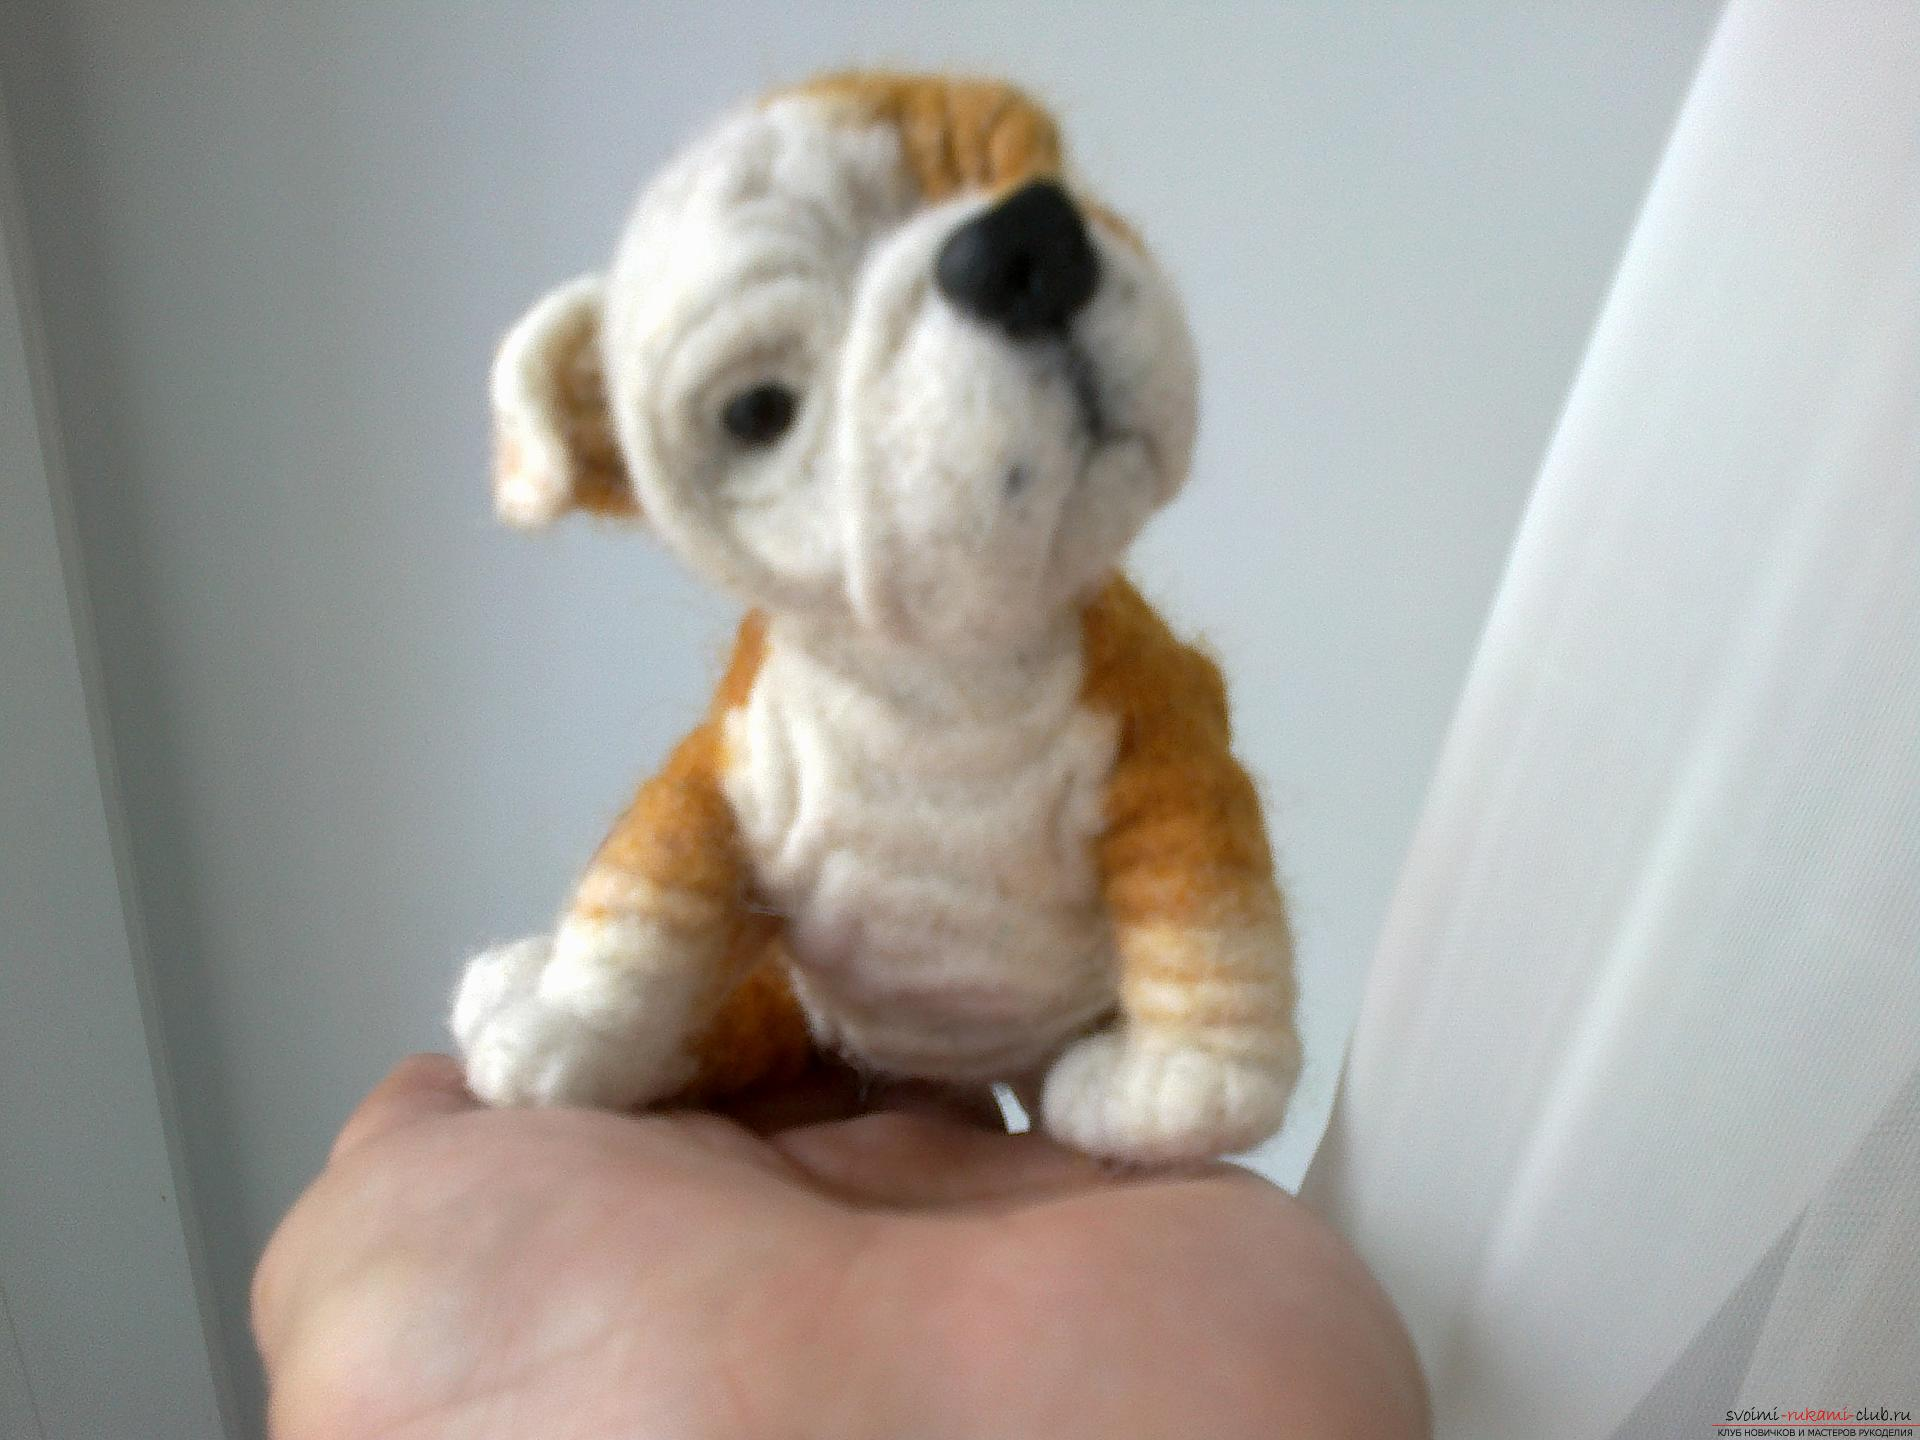 Master class on felting English Bulldog toys made of wool as a gift. Photo №1